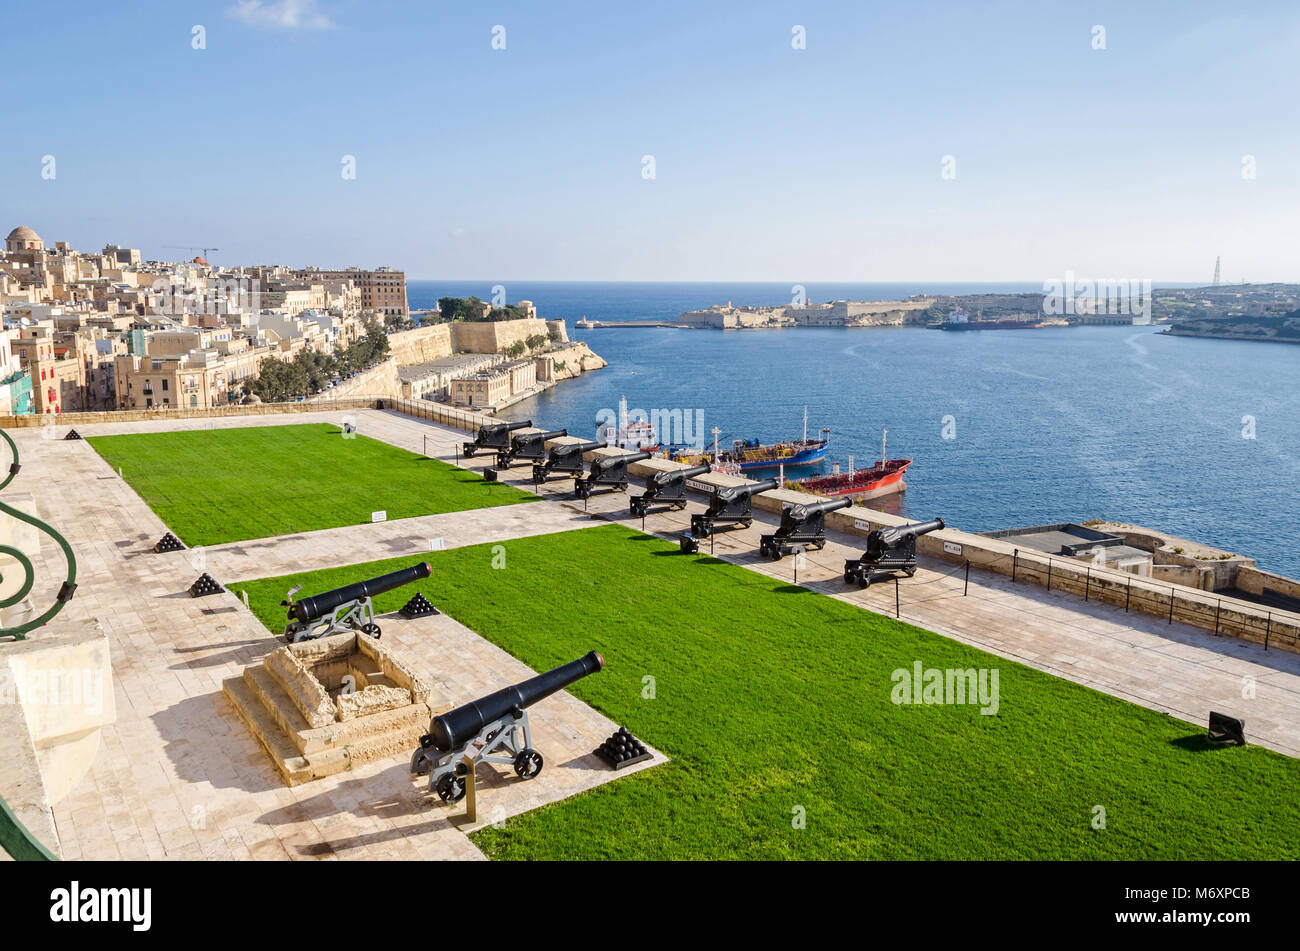 Valletta, Malta - November 8, 2015: View of Valletta from the Upper Barrakka Gardens, with the Grand Harbour looking - Stock Image